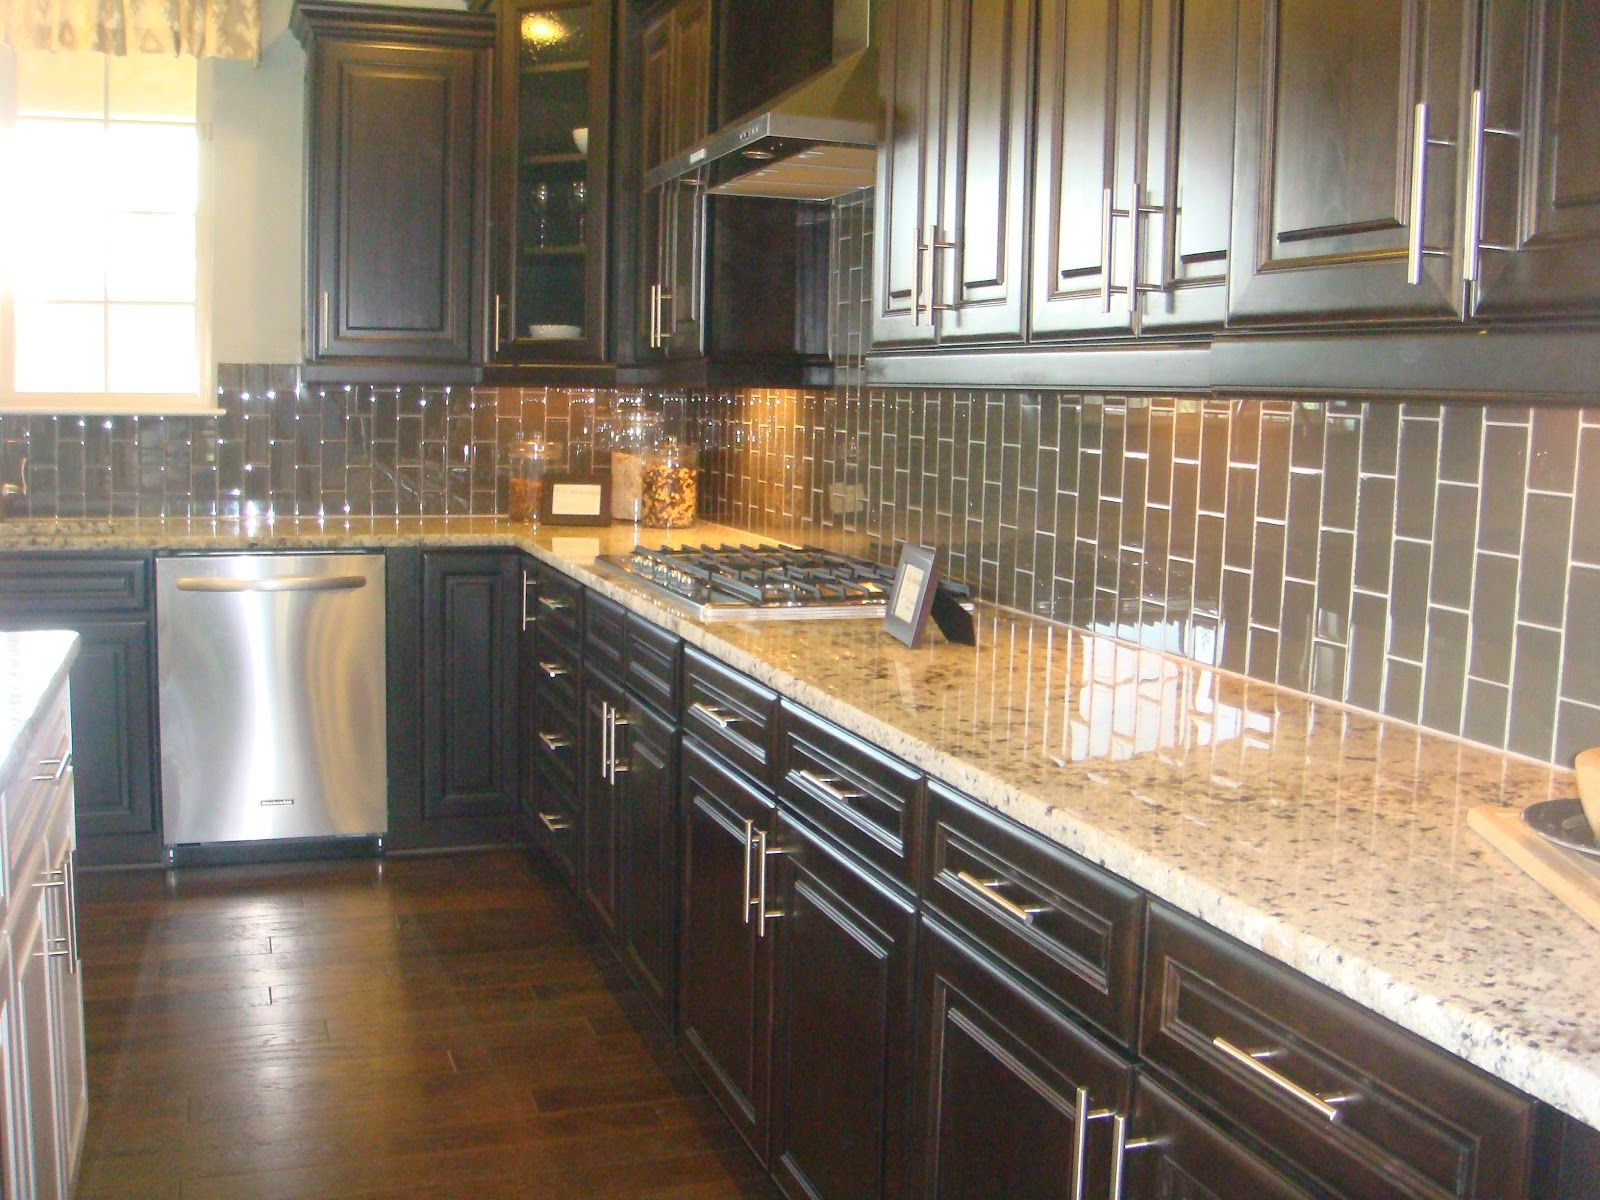 Kitchen Cabinet Espresso Color Espresso Kitchens Kitchen Loving The Vertical Subway Tile